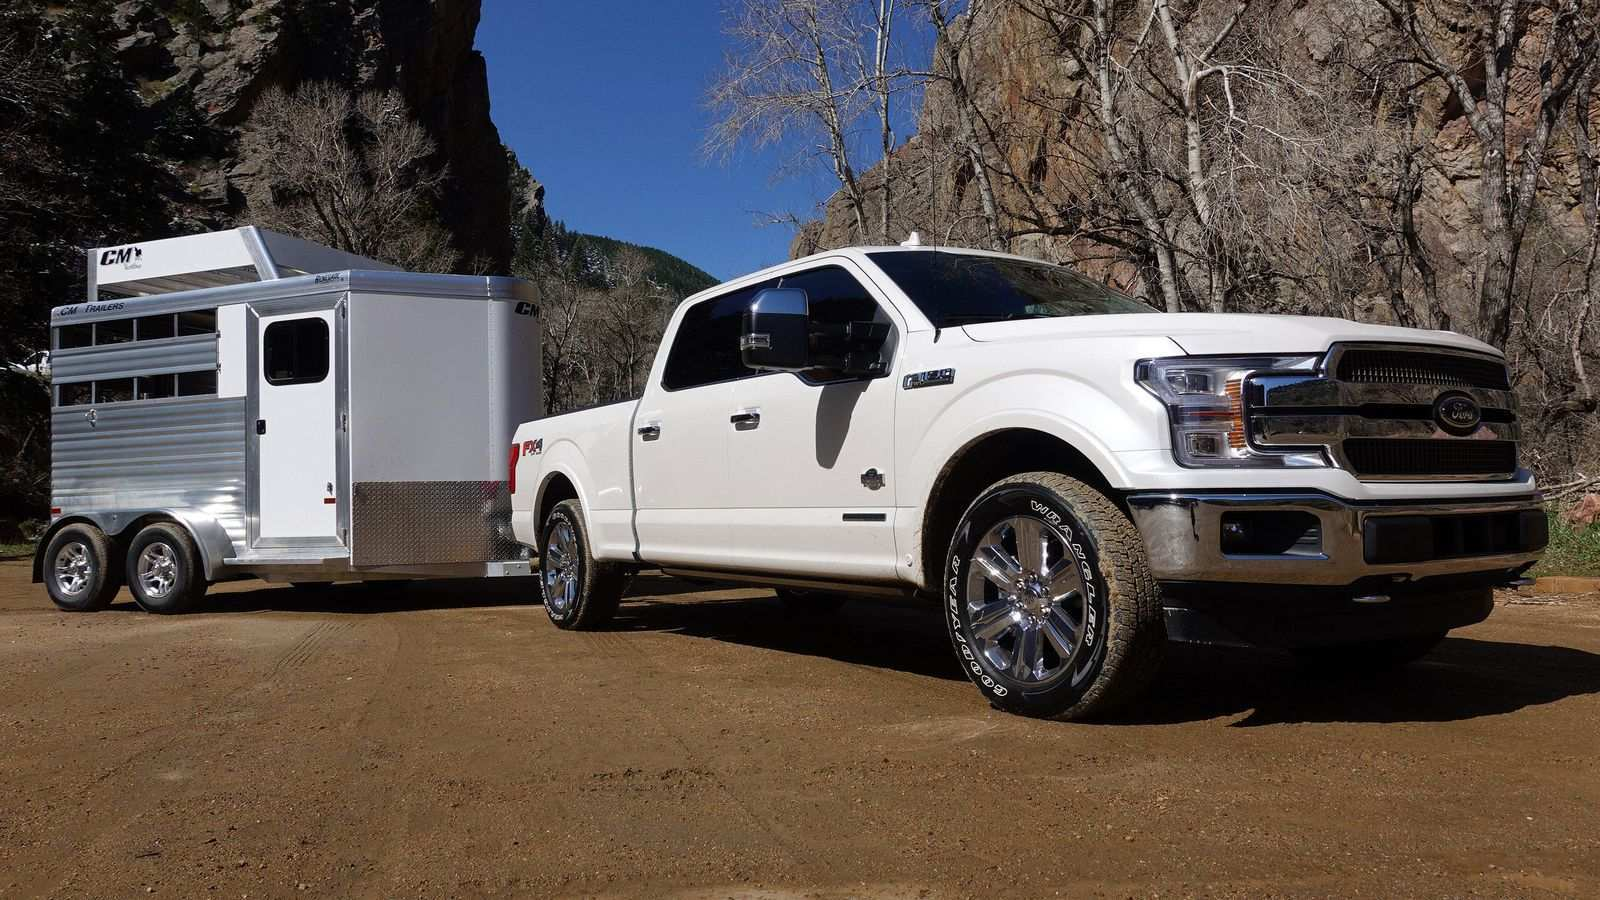 16 New 2019 Ford Half Ton Diesel Prices with 2019 Ford Half Ton Diesel